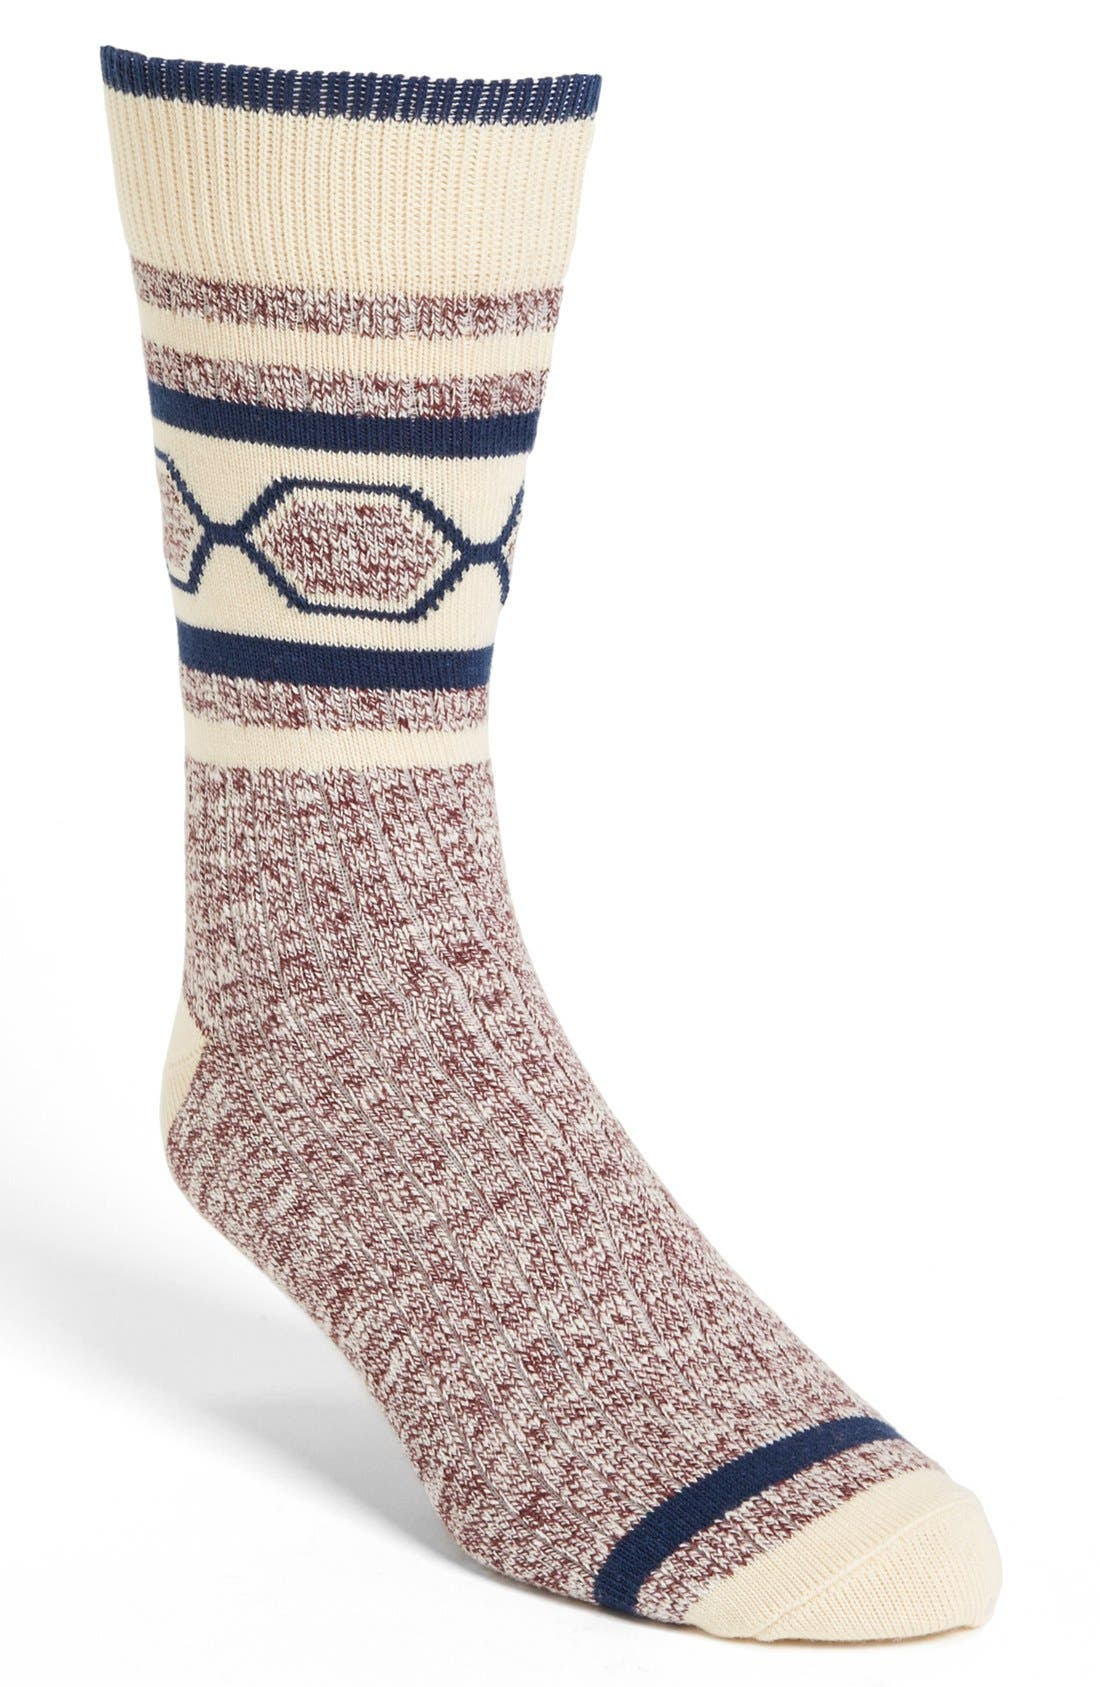 Alternate Image 1 Selected - Pact Camp Socks